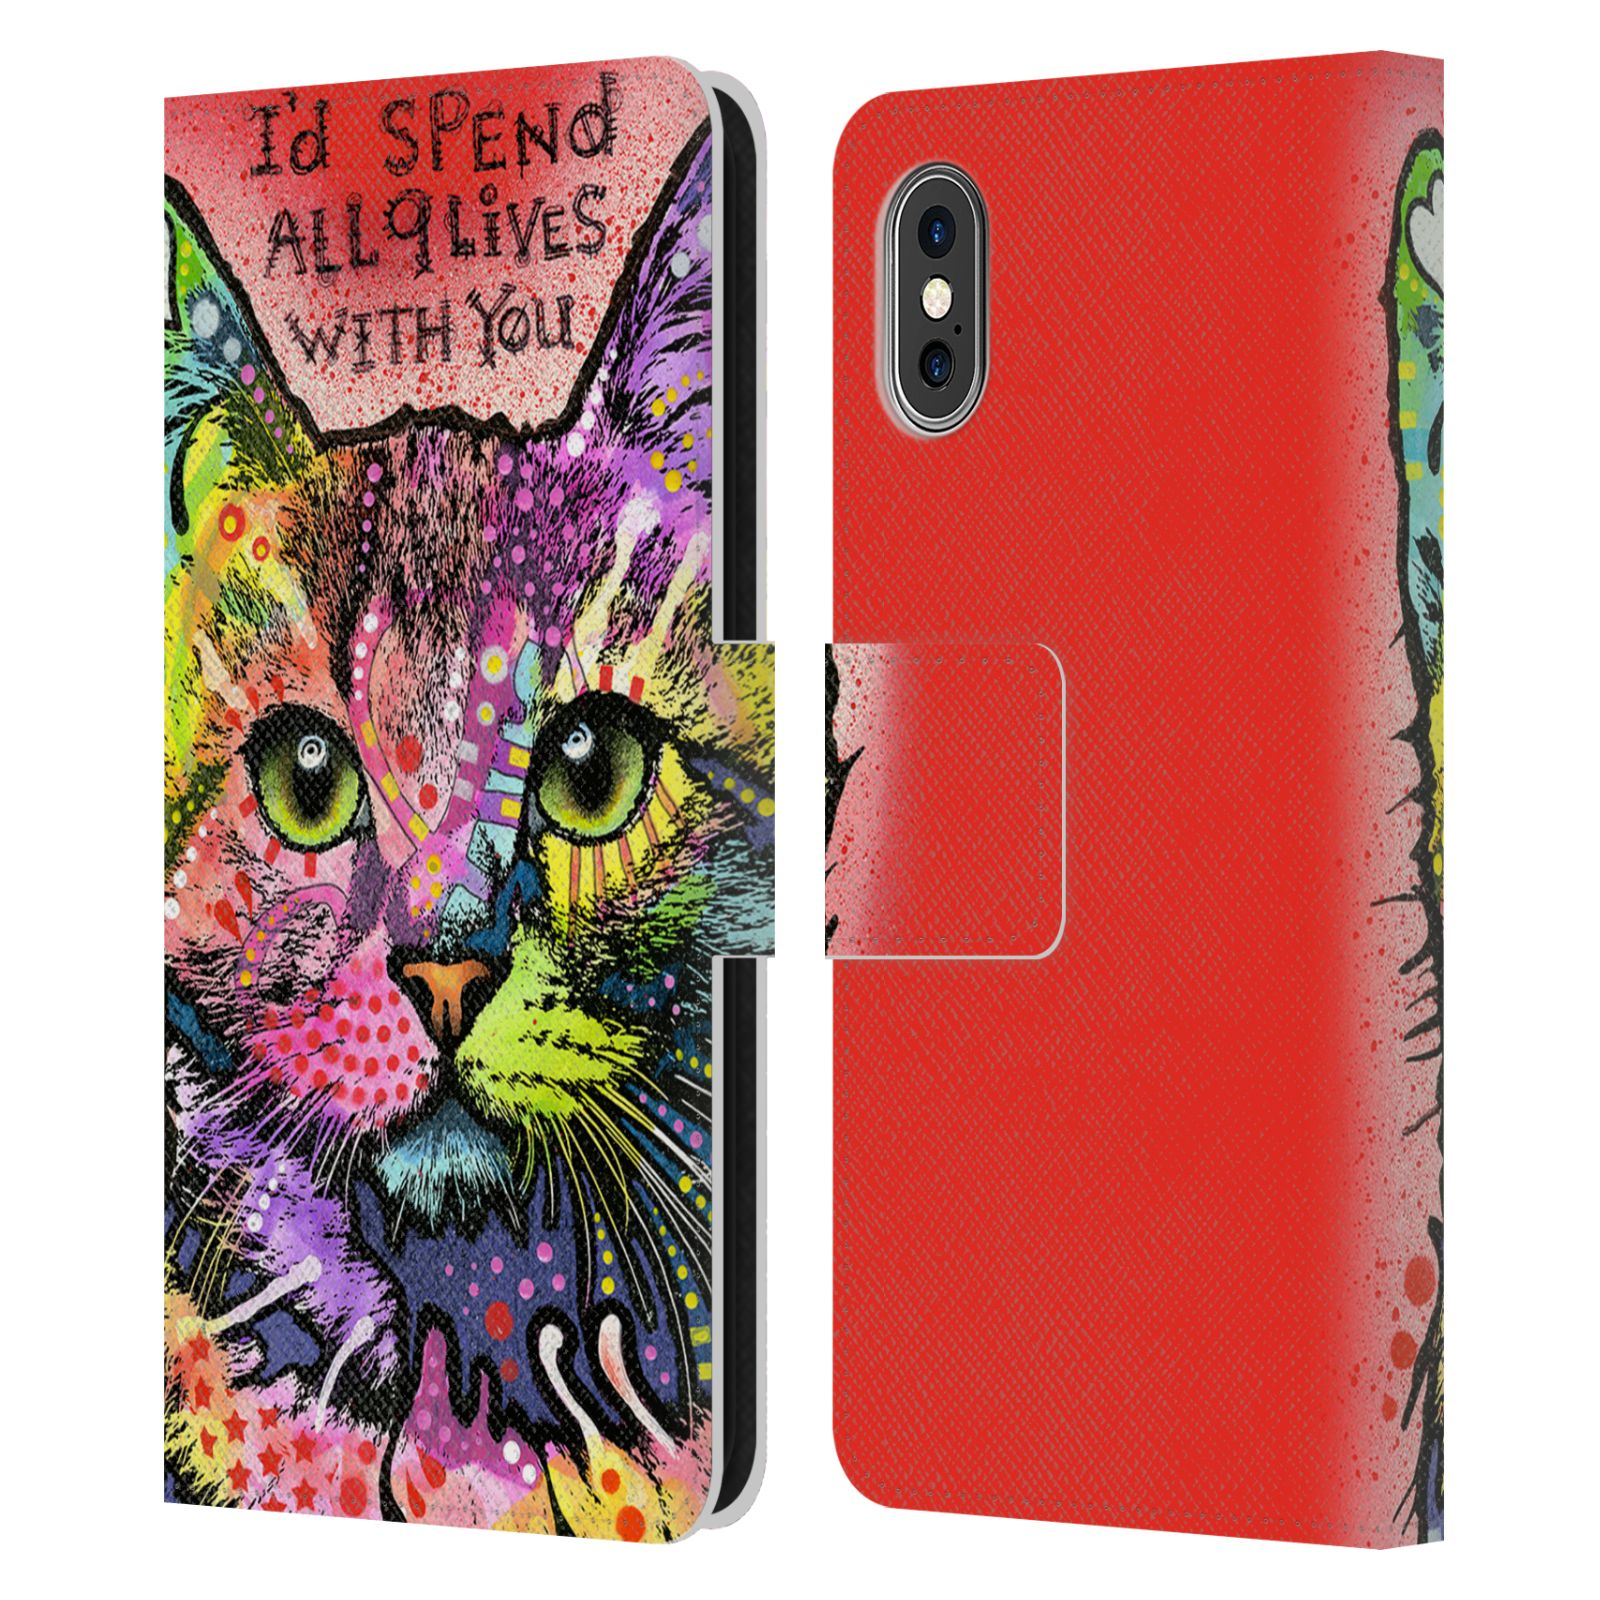 OFFICIAL-DEAN-RUSSO-CATS-2-LEATHER-BOOK-WALLET-CASE-FOR-APPLE-iPHONE-PHONES